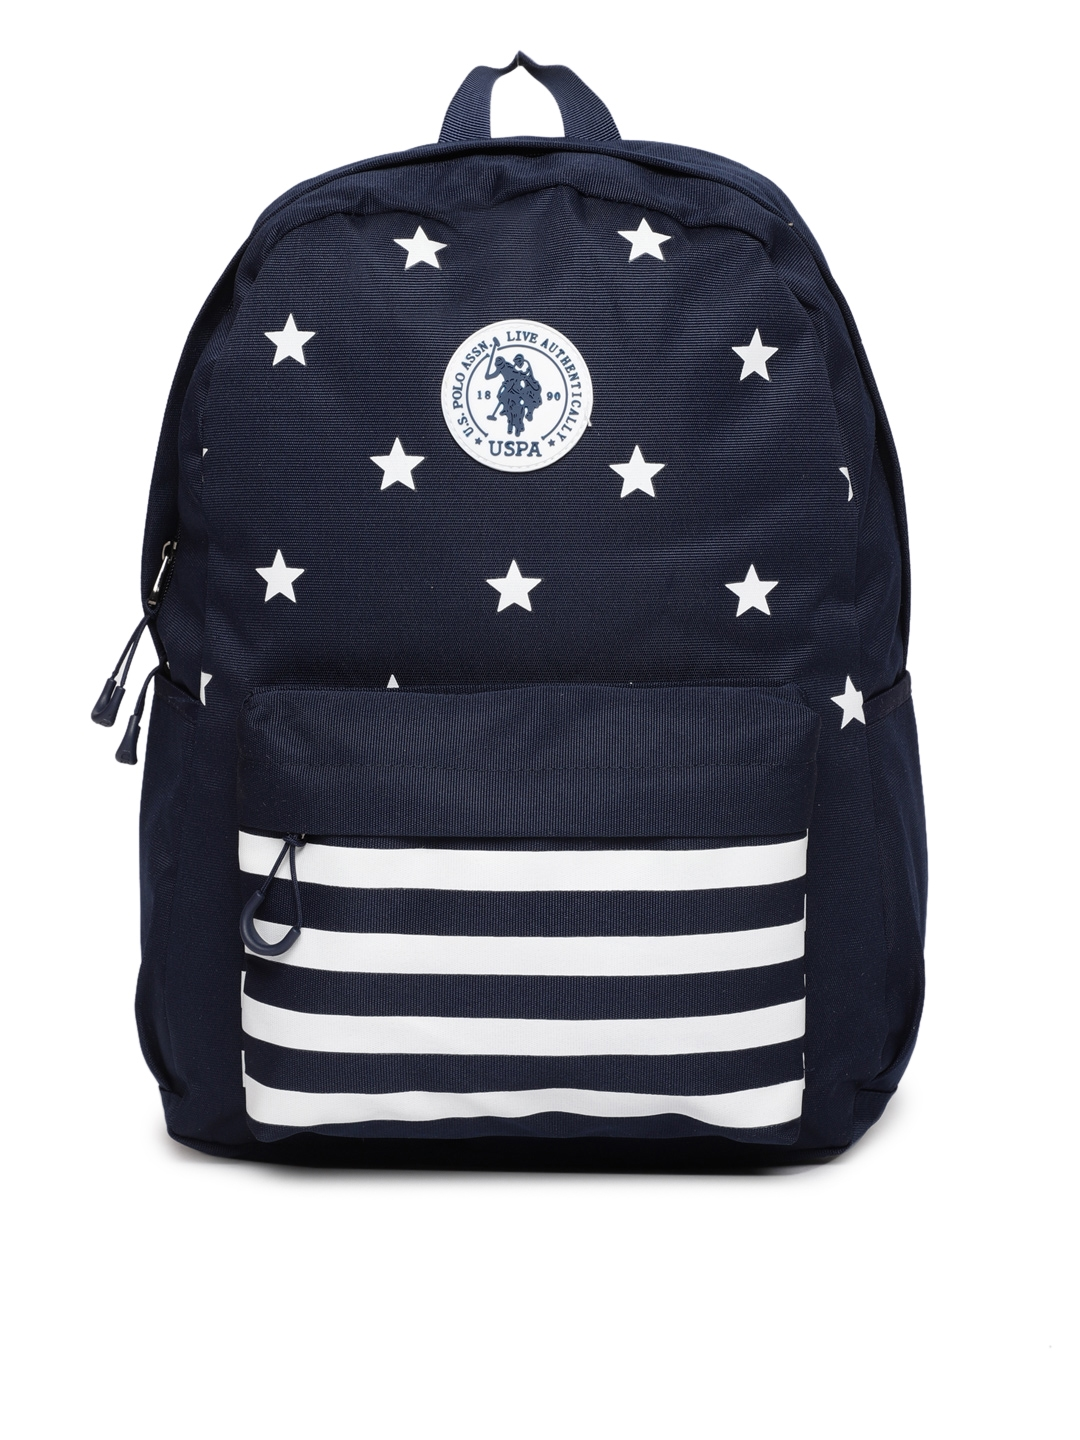 56a7dcaafc4 Buy U.S. Polo Assn. Men Navy Blue Graphic Backpack - Backpacks for ...